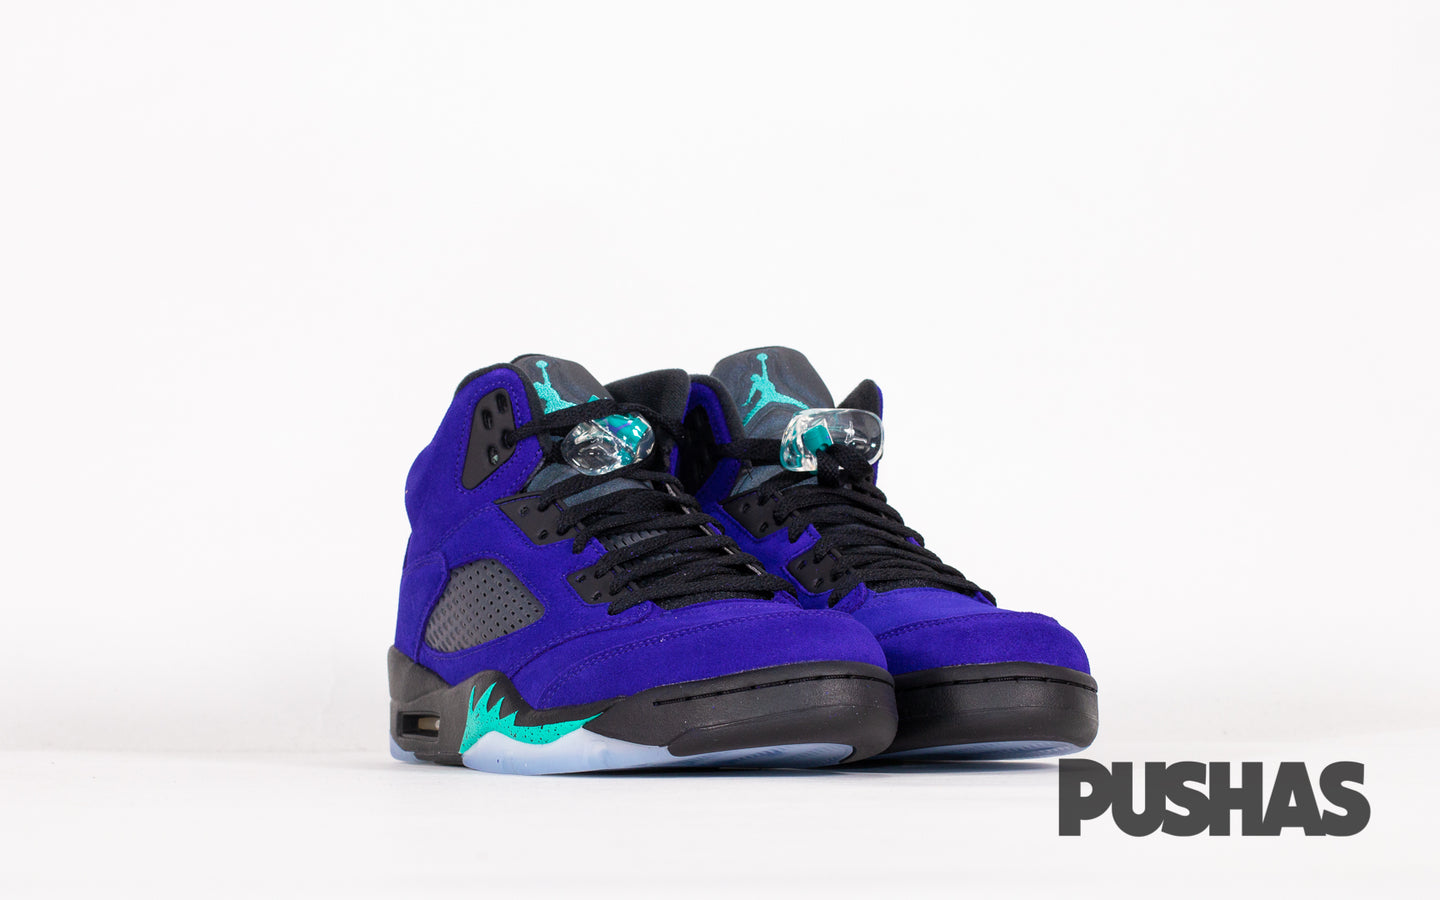 pushas-nike-Air-Jordan-5-Alternate-Grape